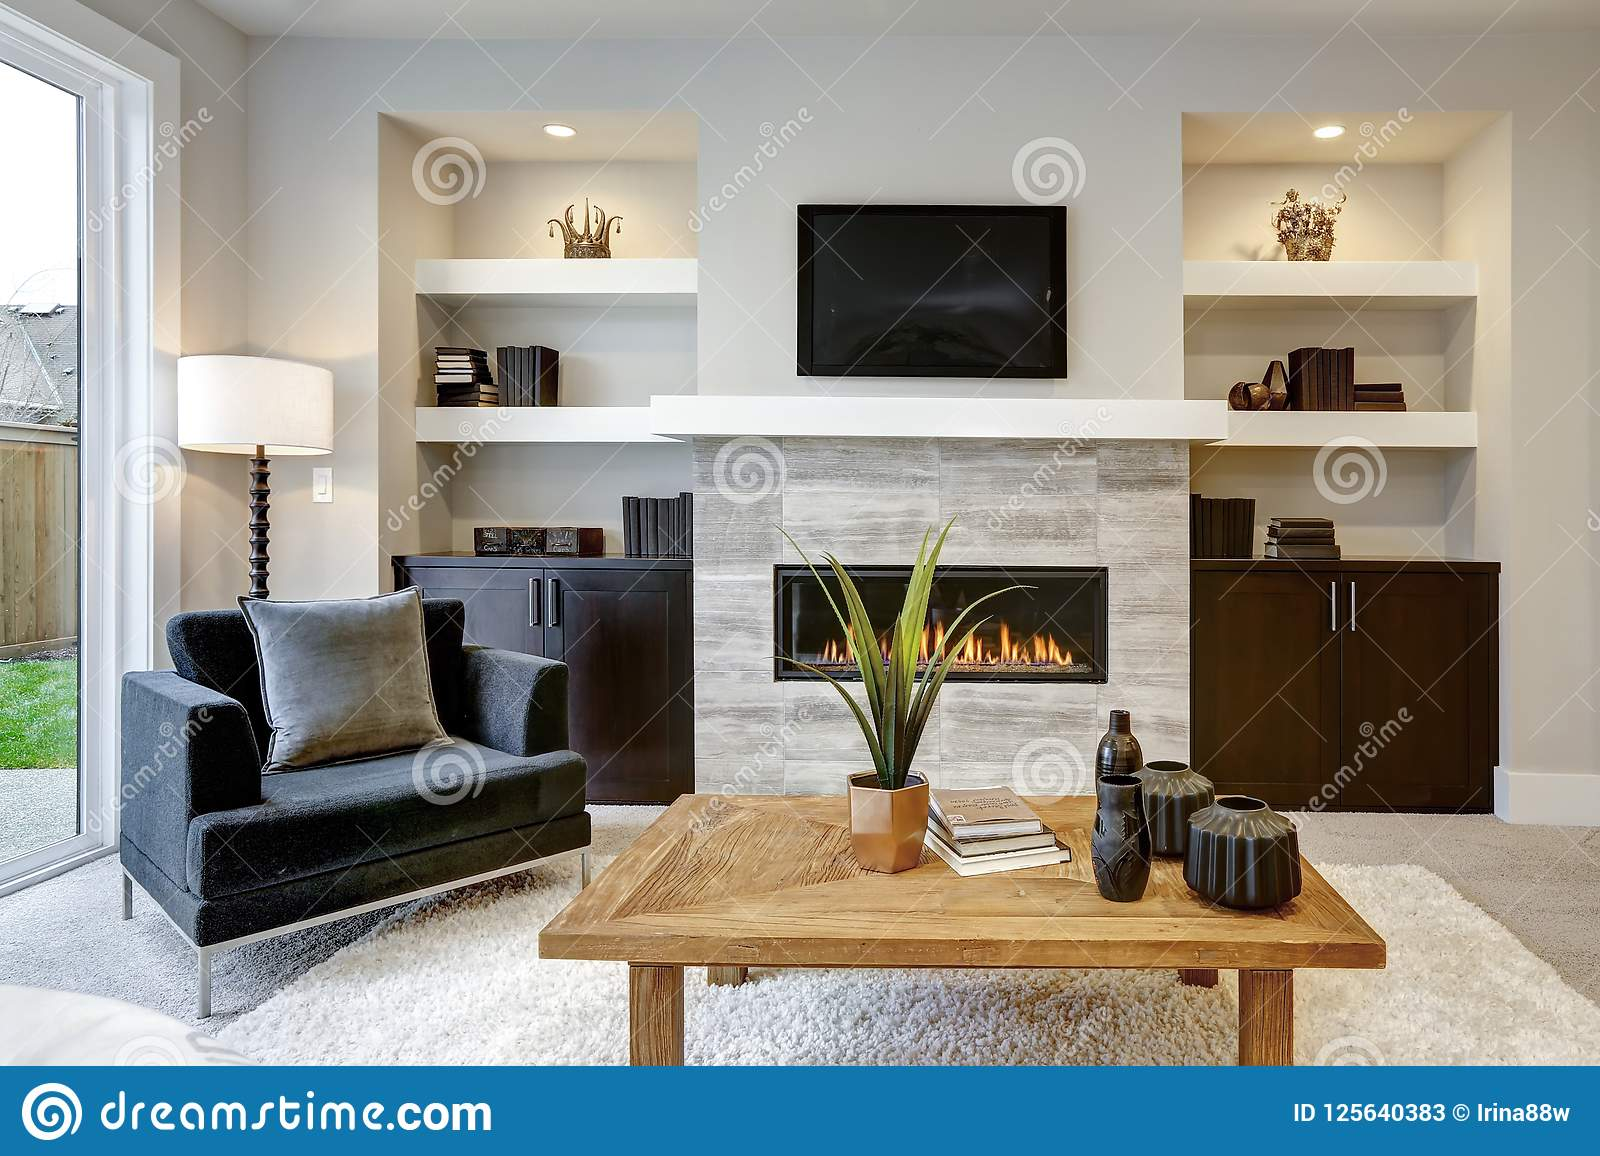 Beautiful Modern Living Room Interior With Stone Wall And ...